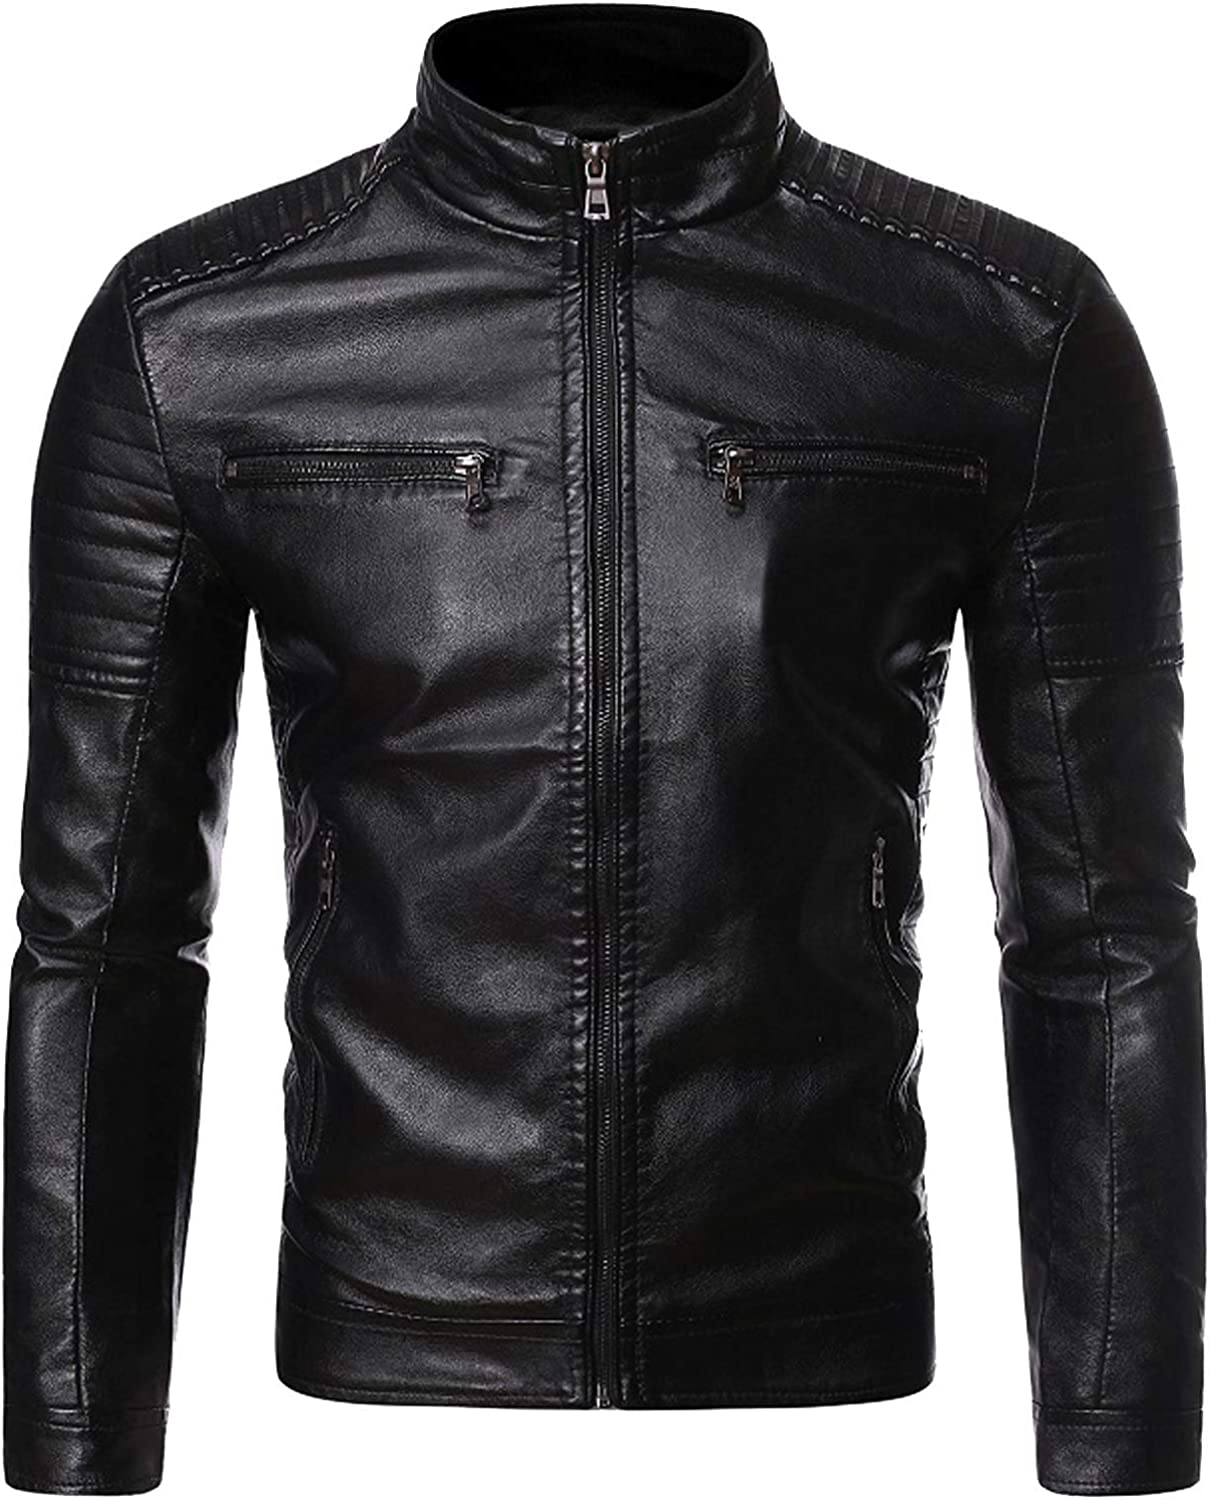 Beshion Leather Jacket for Men Motorcycle Club Casual Stand Collar Outwear Coat Faux Slim Fit Zipper up Jakcet with Pocket